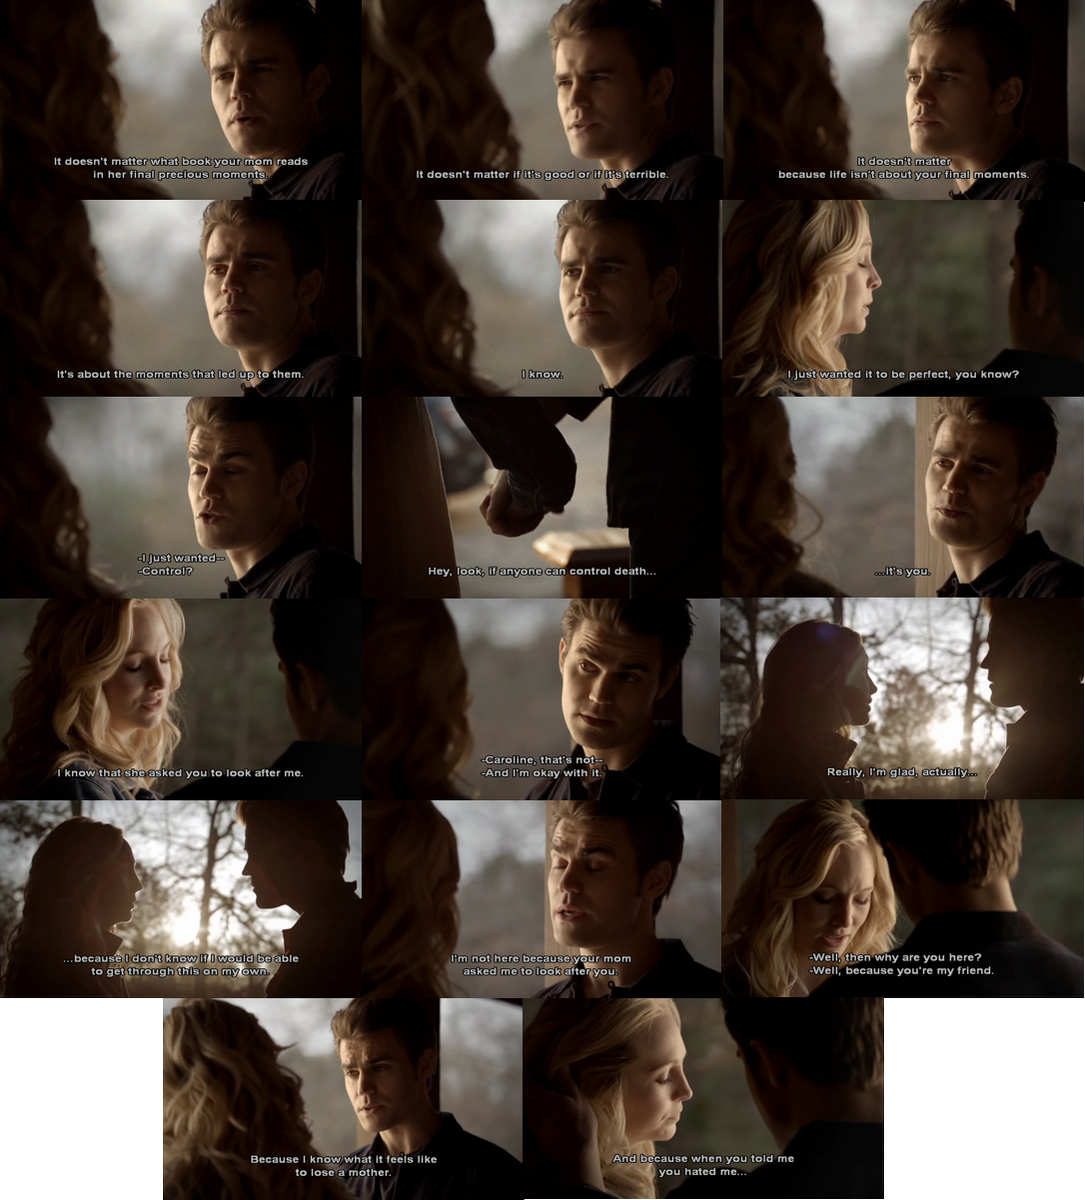 #Caroline: I think we both know I never really hated you. (They kiss) One of us should probably say something. #Stefan: Go for it. Caroline: Not that. #Steroline #VampireDiaries #TVD #TheVampireDiaries #StefanAndCaroline #CarolineAndStefanpic.twitter.com/fgZKPSl8zi